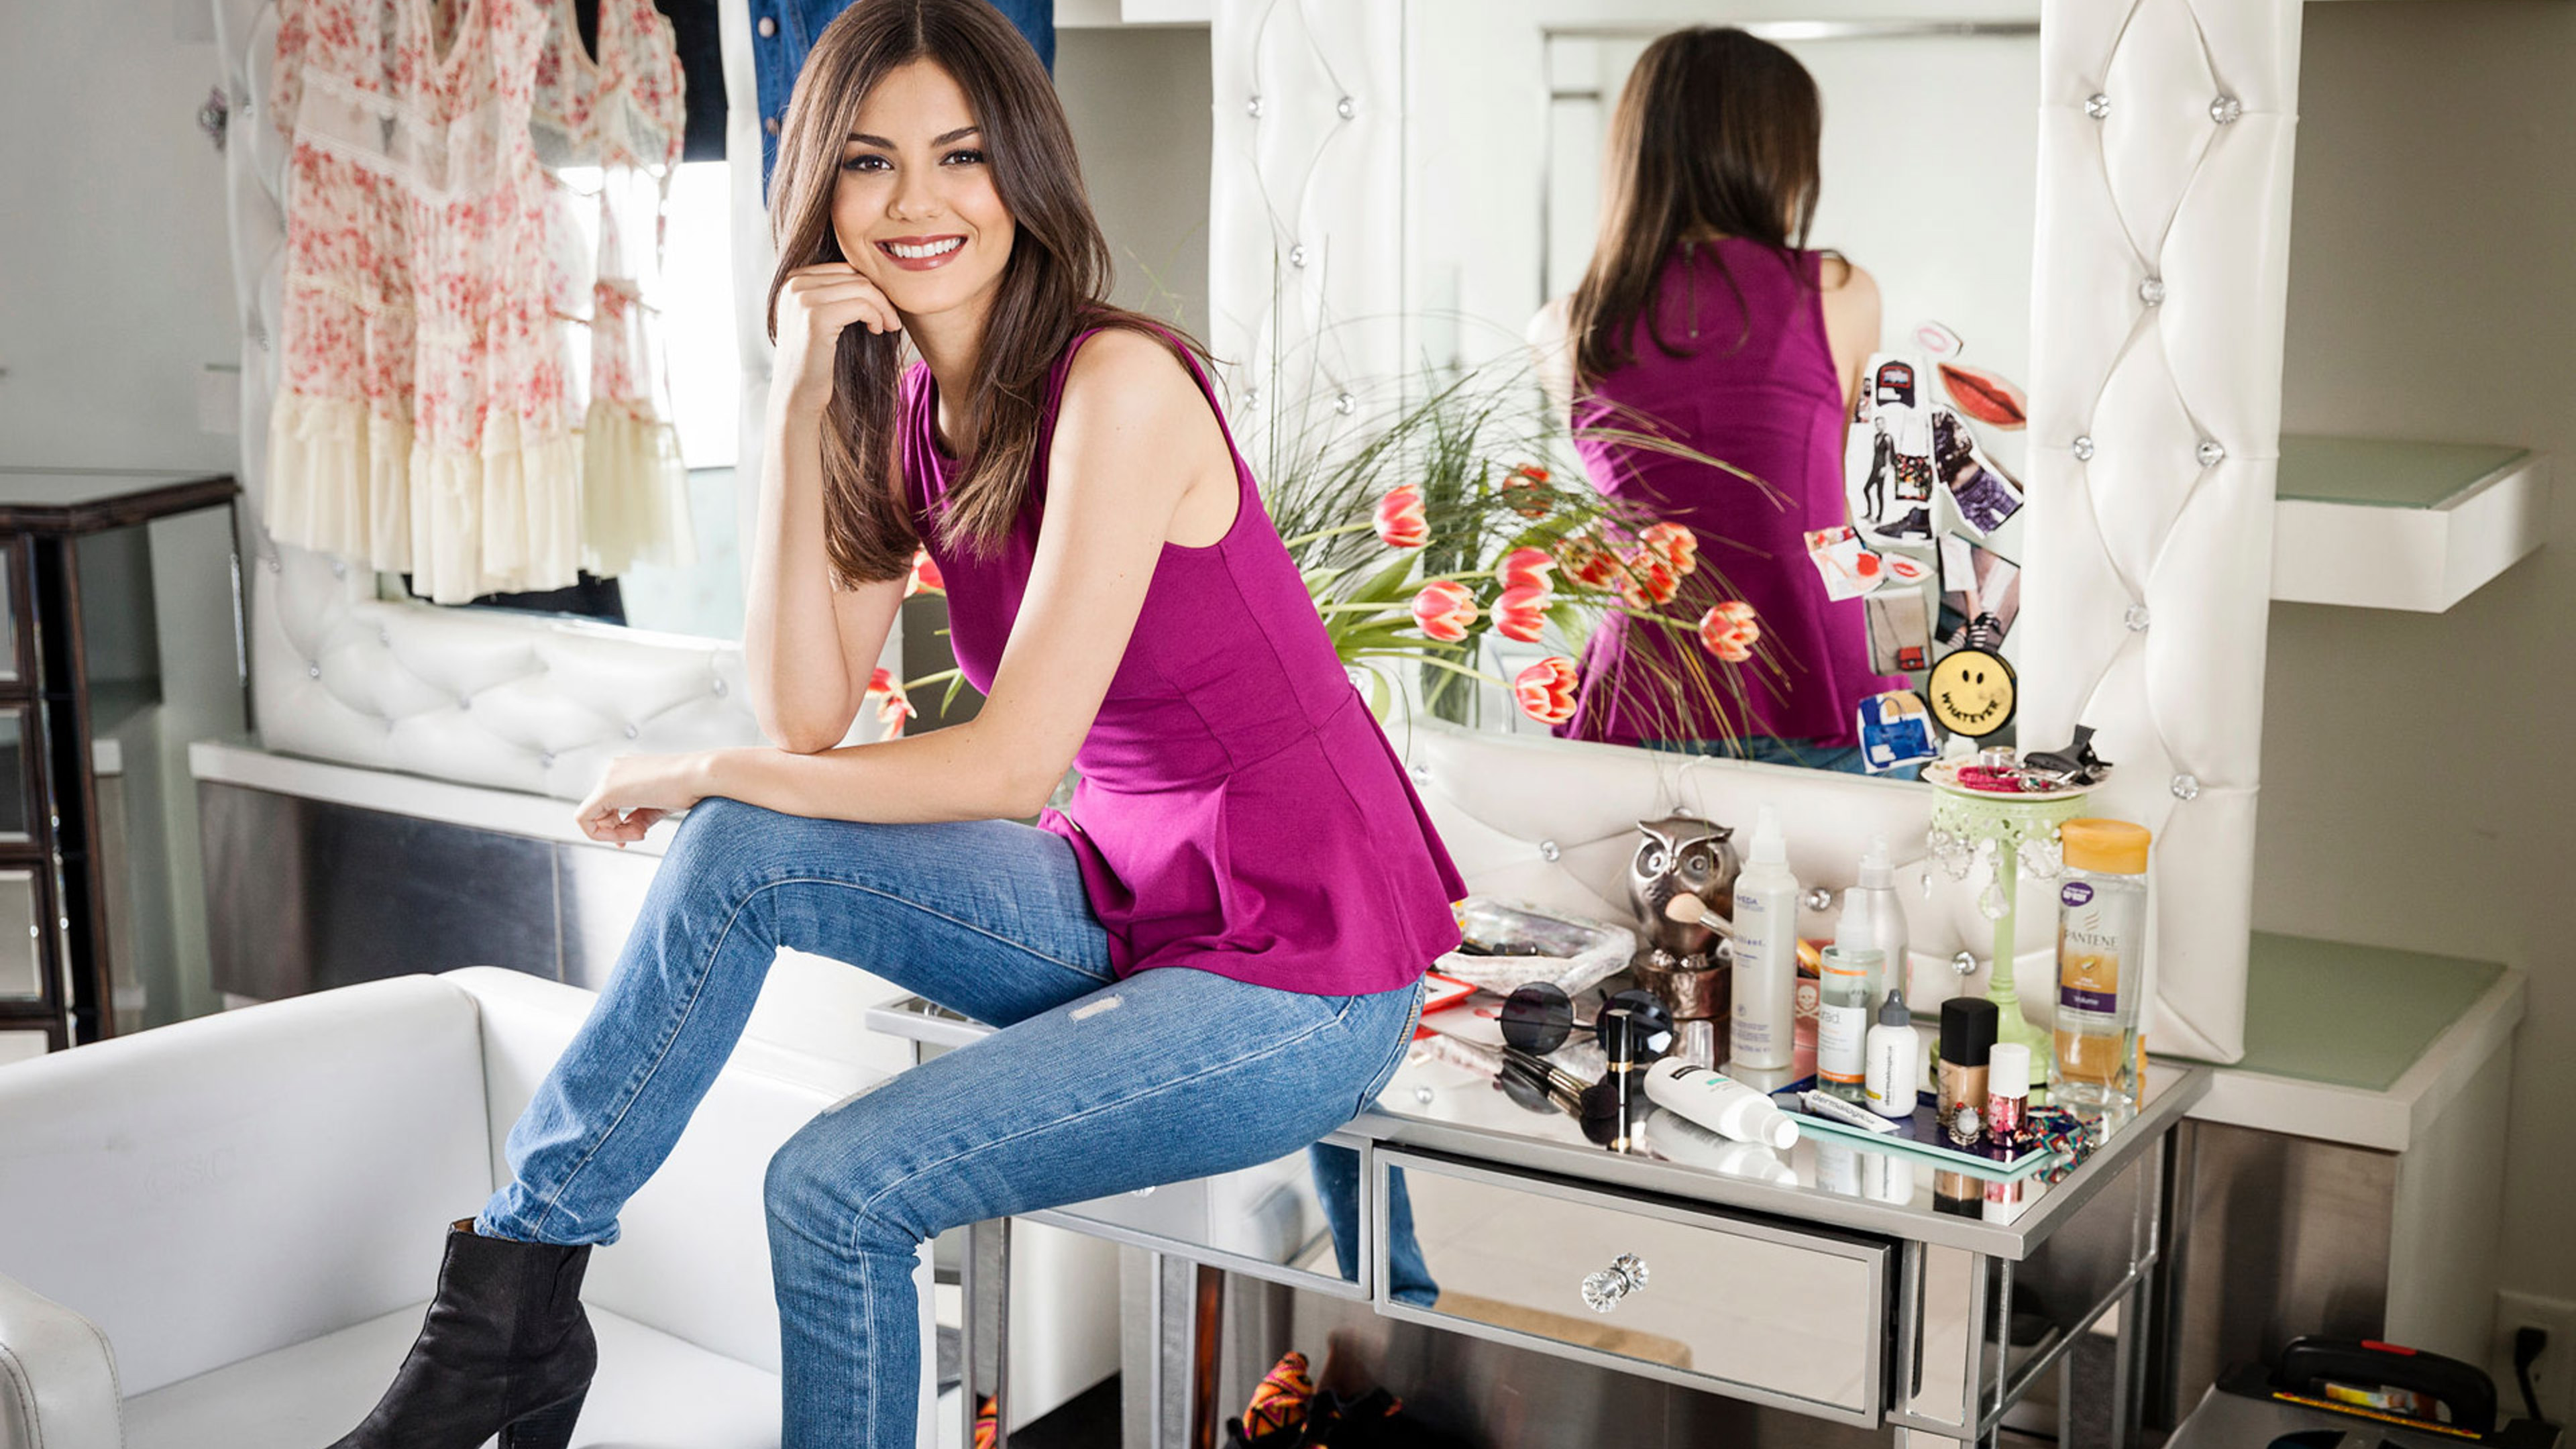 victoria-justice-smiling-2-on.jpg